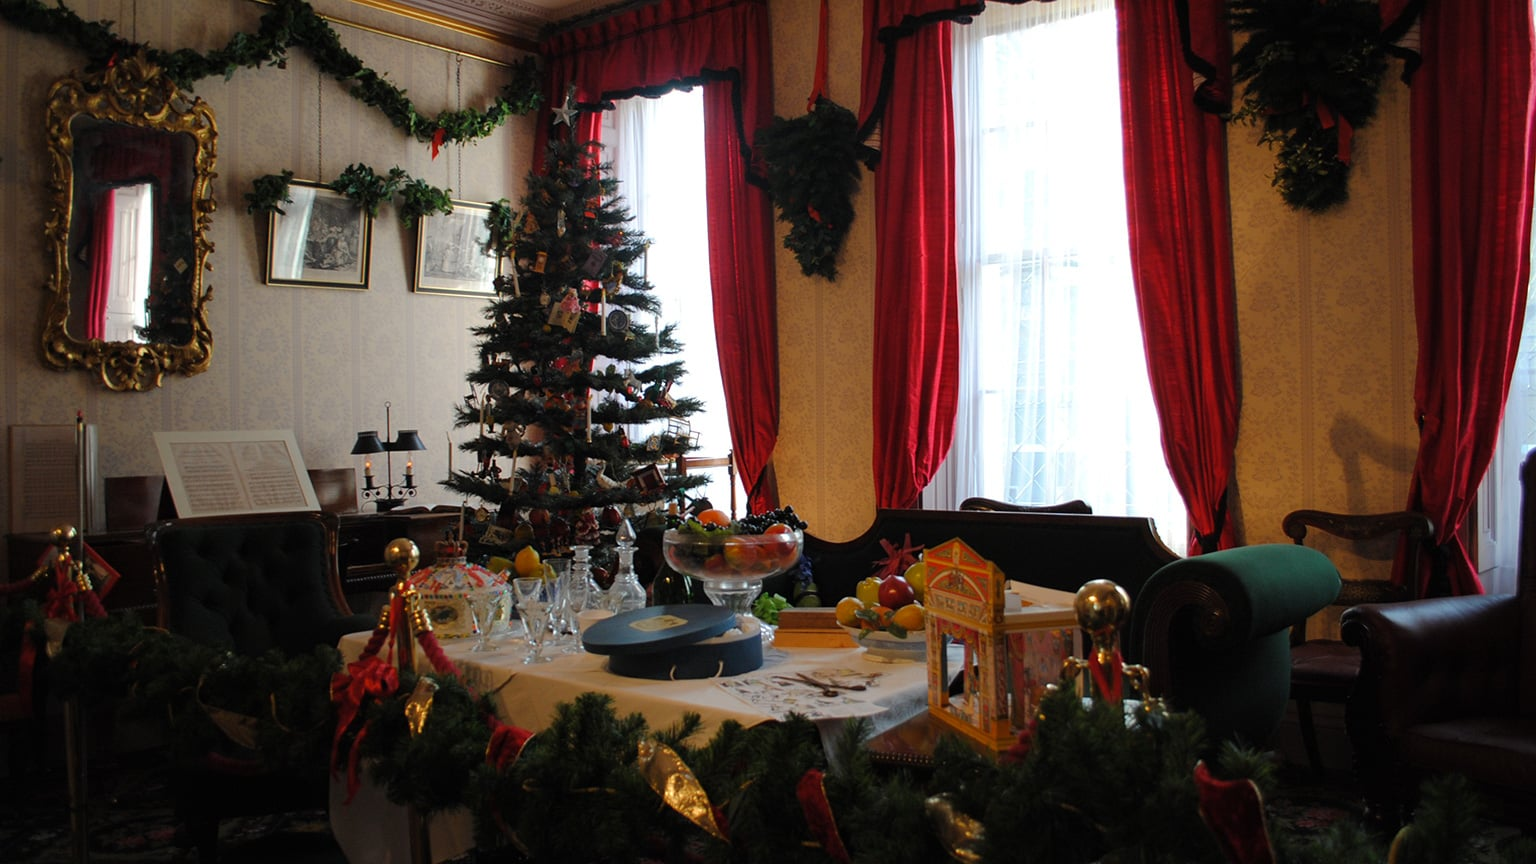 1. Charles Dickens Museum, London - Free entry with National Art Pass